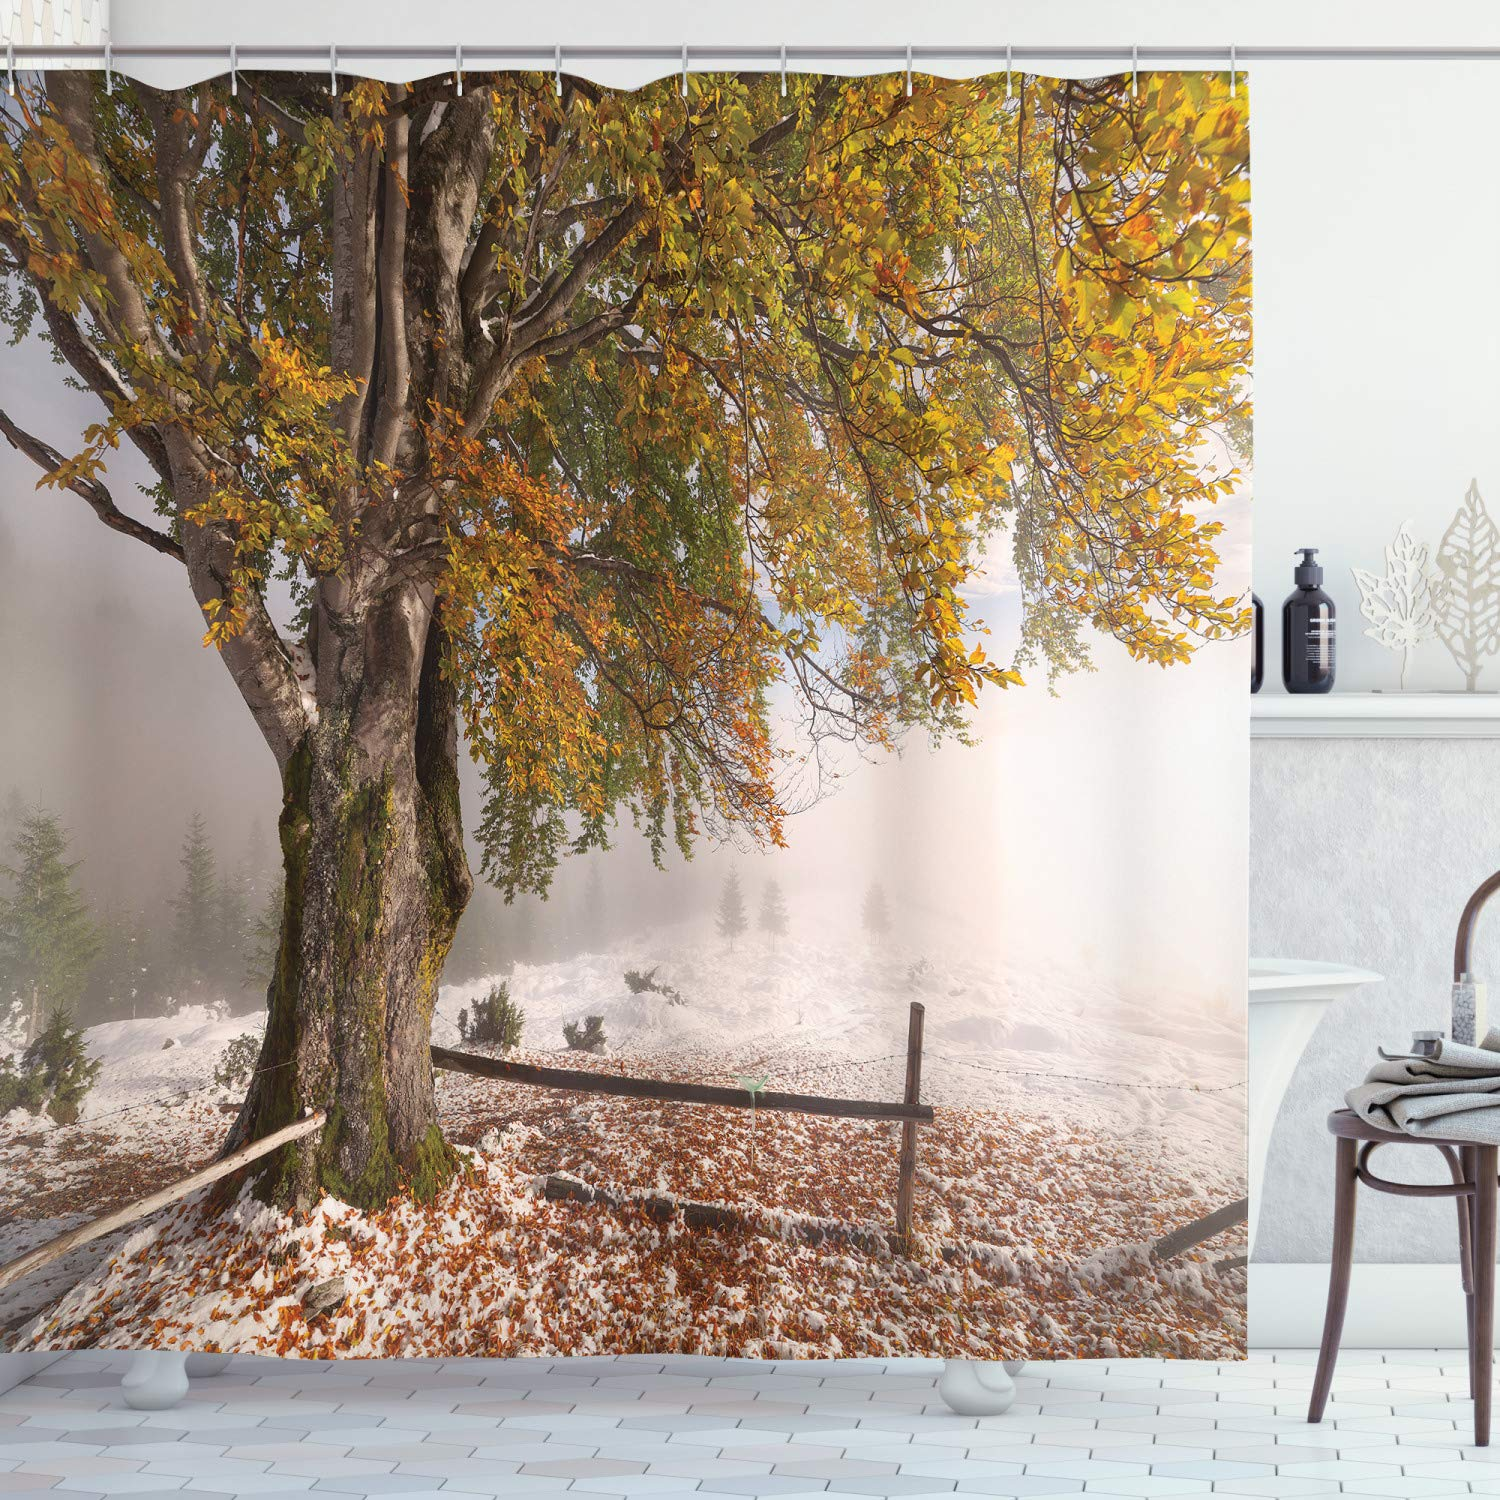 """Ambesonne Leaves Shower Curtain, Birches a Big Tree in The First Fall Snow December Country Blizzard Frozen Nature, Cloth Fabric Bathroom Decor Set with Hooks, 75"""" Long, Green White"""